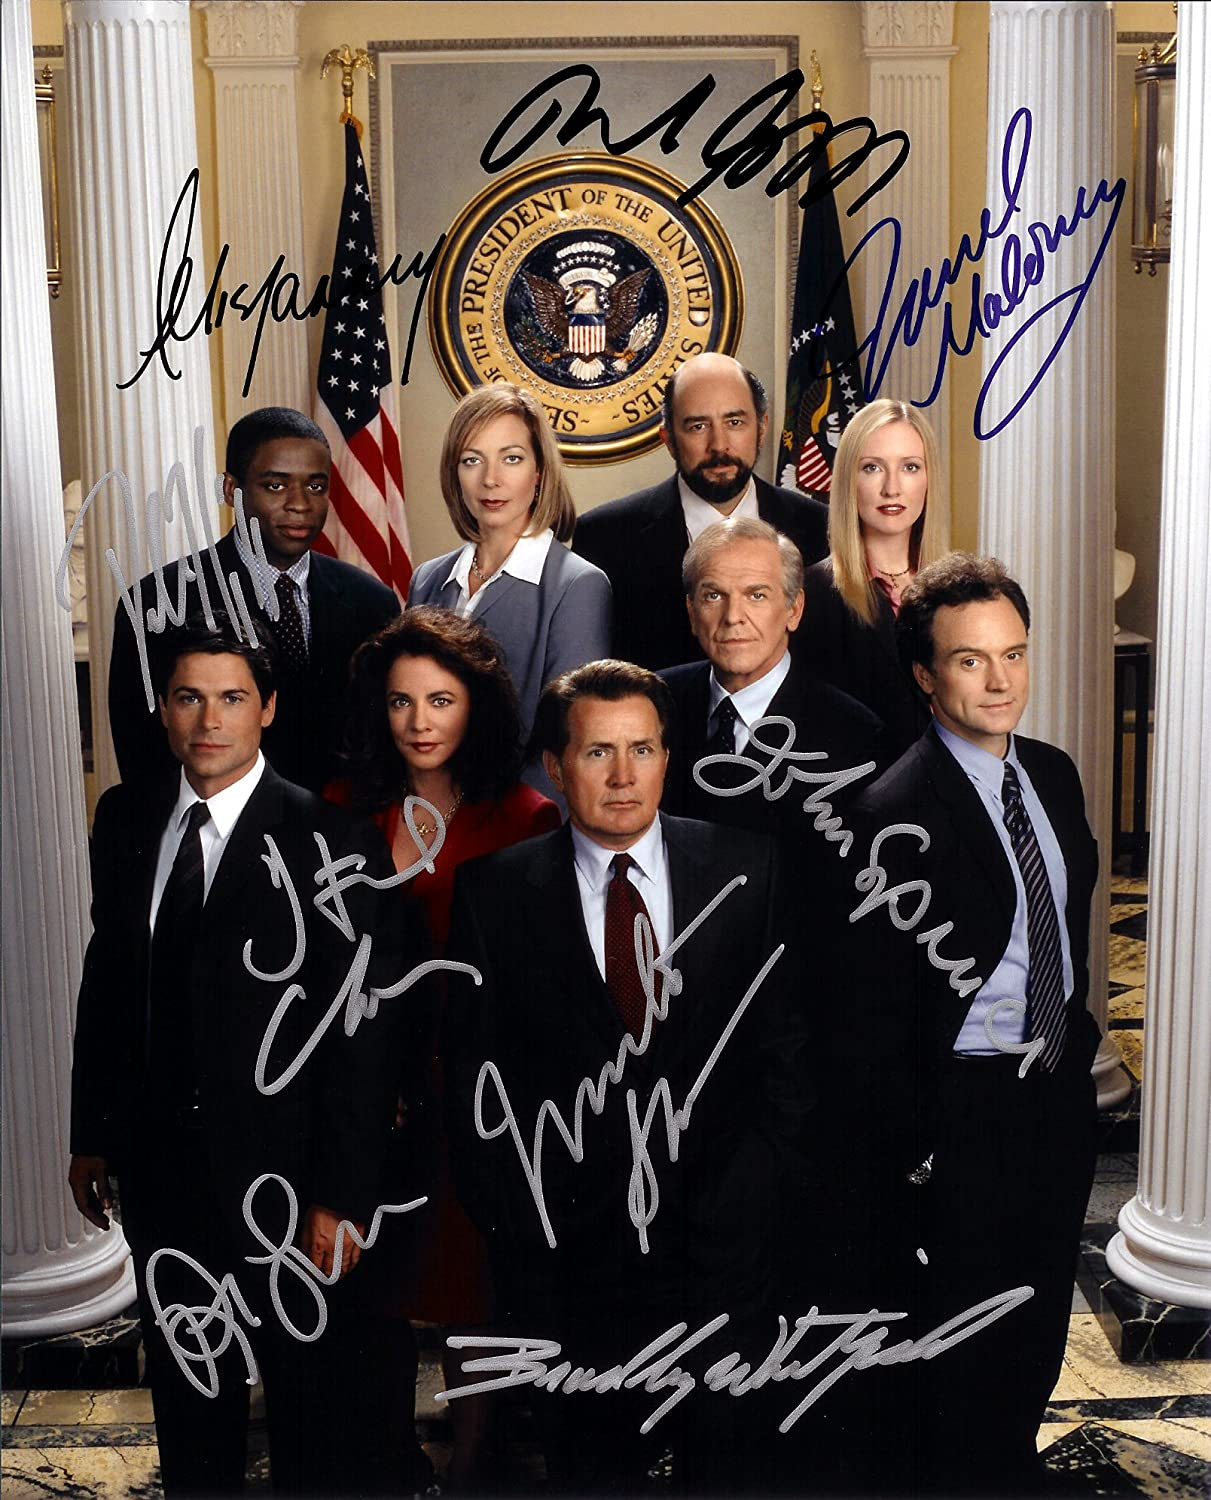 The West Wing TV Series Cast Signed Autographed 8 X 10 RP Photo - Mint Condition got7 got 7 youngjae jackson autographed signed photo flight log arrival 6 inches new korean freeshipping 03 2017